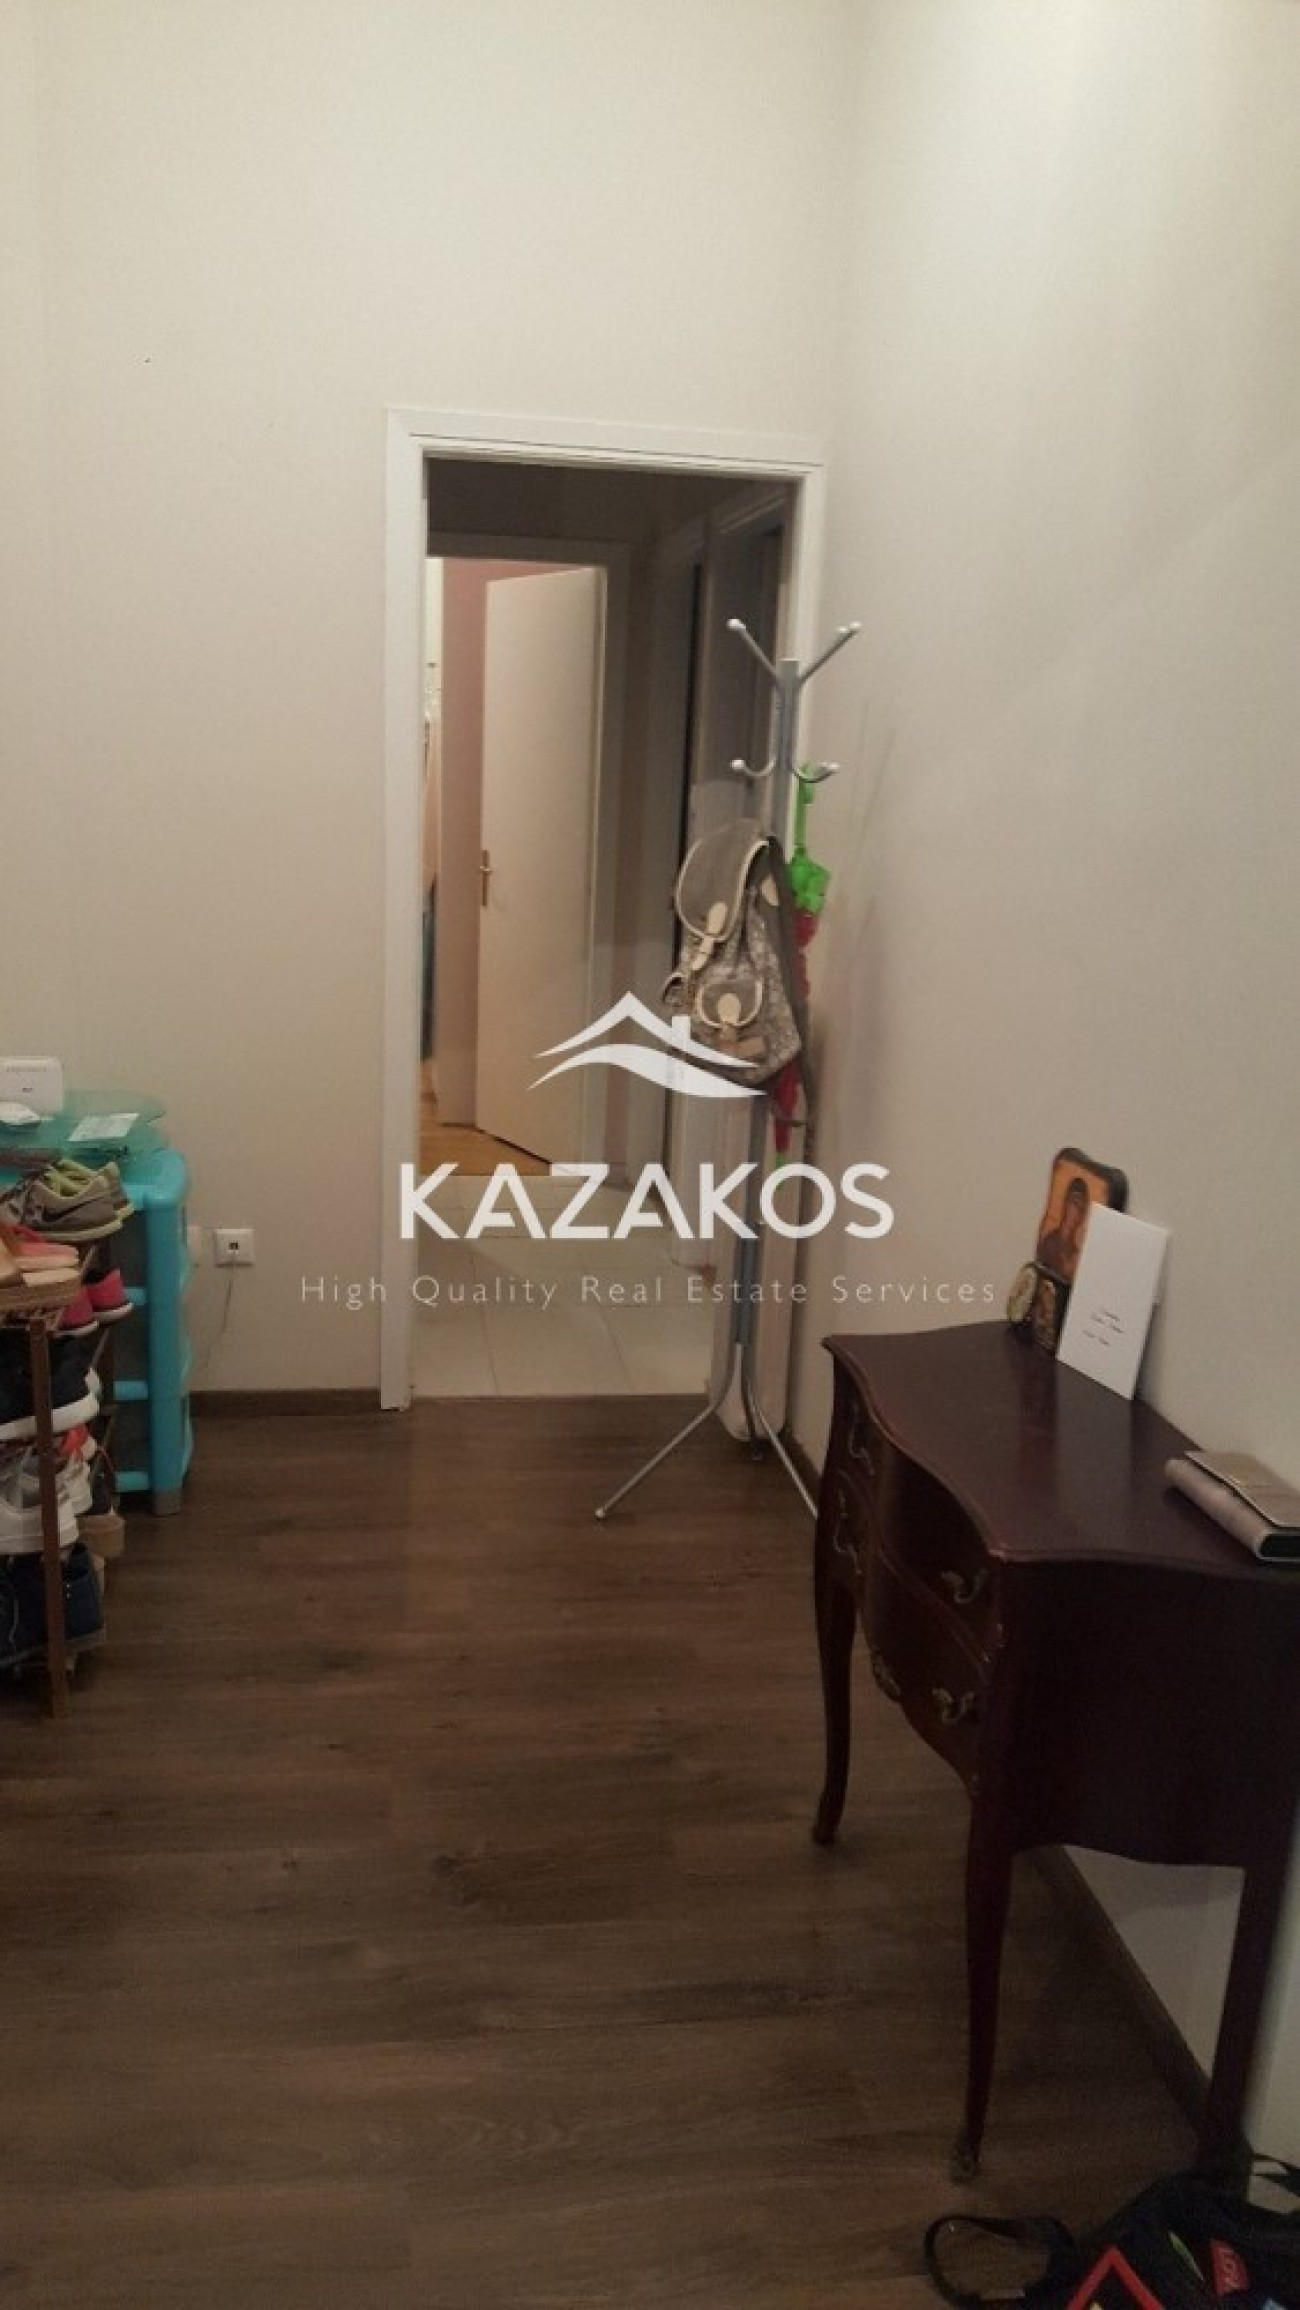 Residential Other for Sale in Vyronas, Central & South Region of Athens, Greece